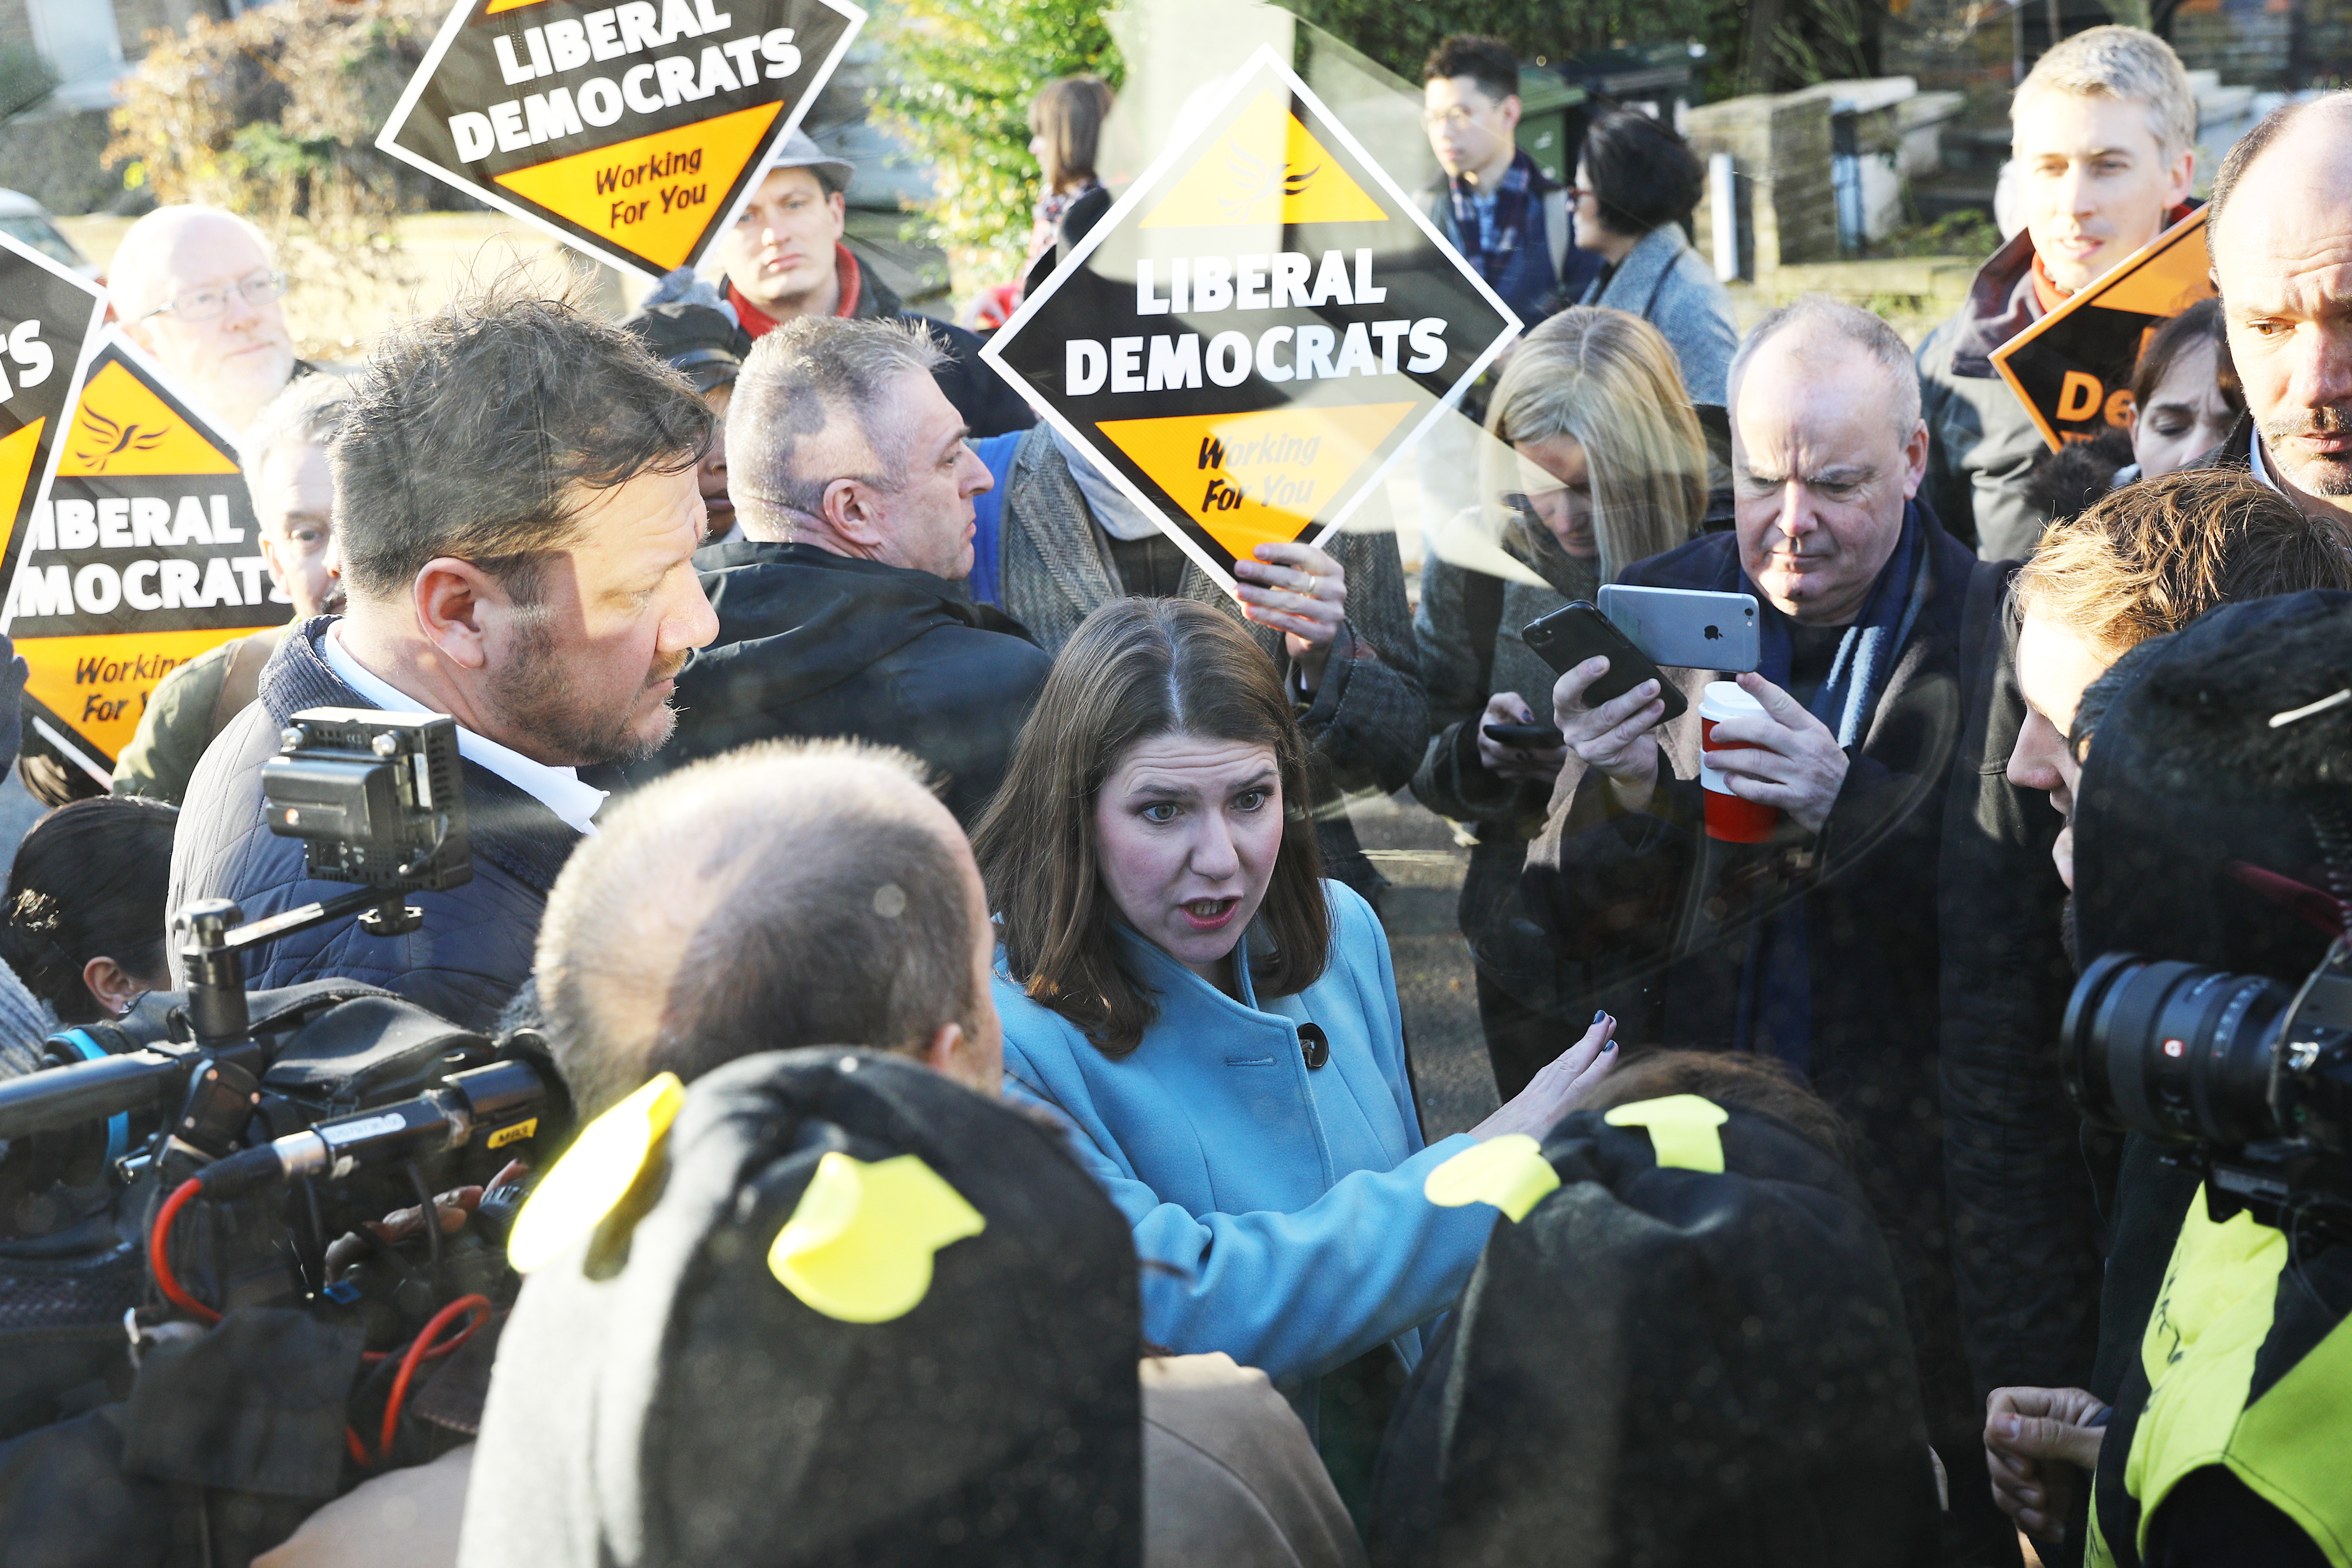 Liberal Democrat Leader Jo Swinson speaks to Extinction Rebellion protesters dressed as bees after they glued themselves to the party's battle bus during a visit to Knights Youth Centre in London, while on the General Election campaign trail.